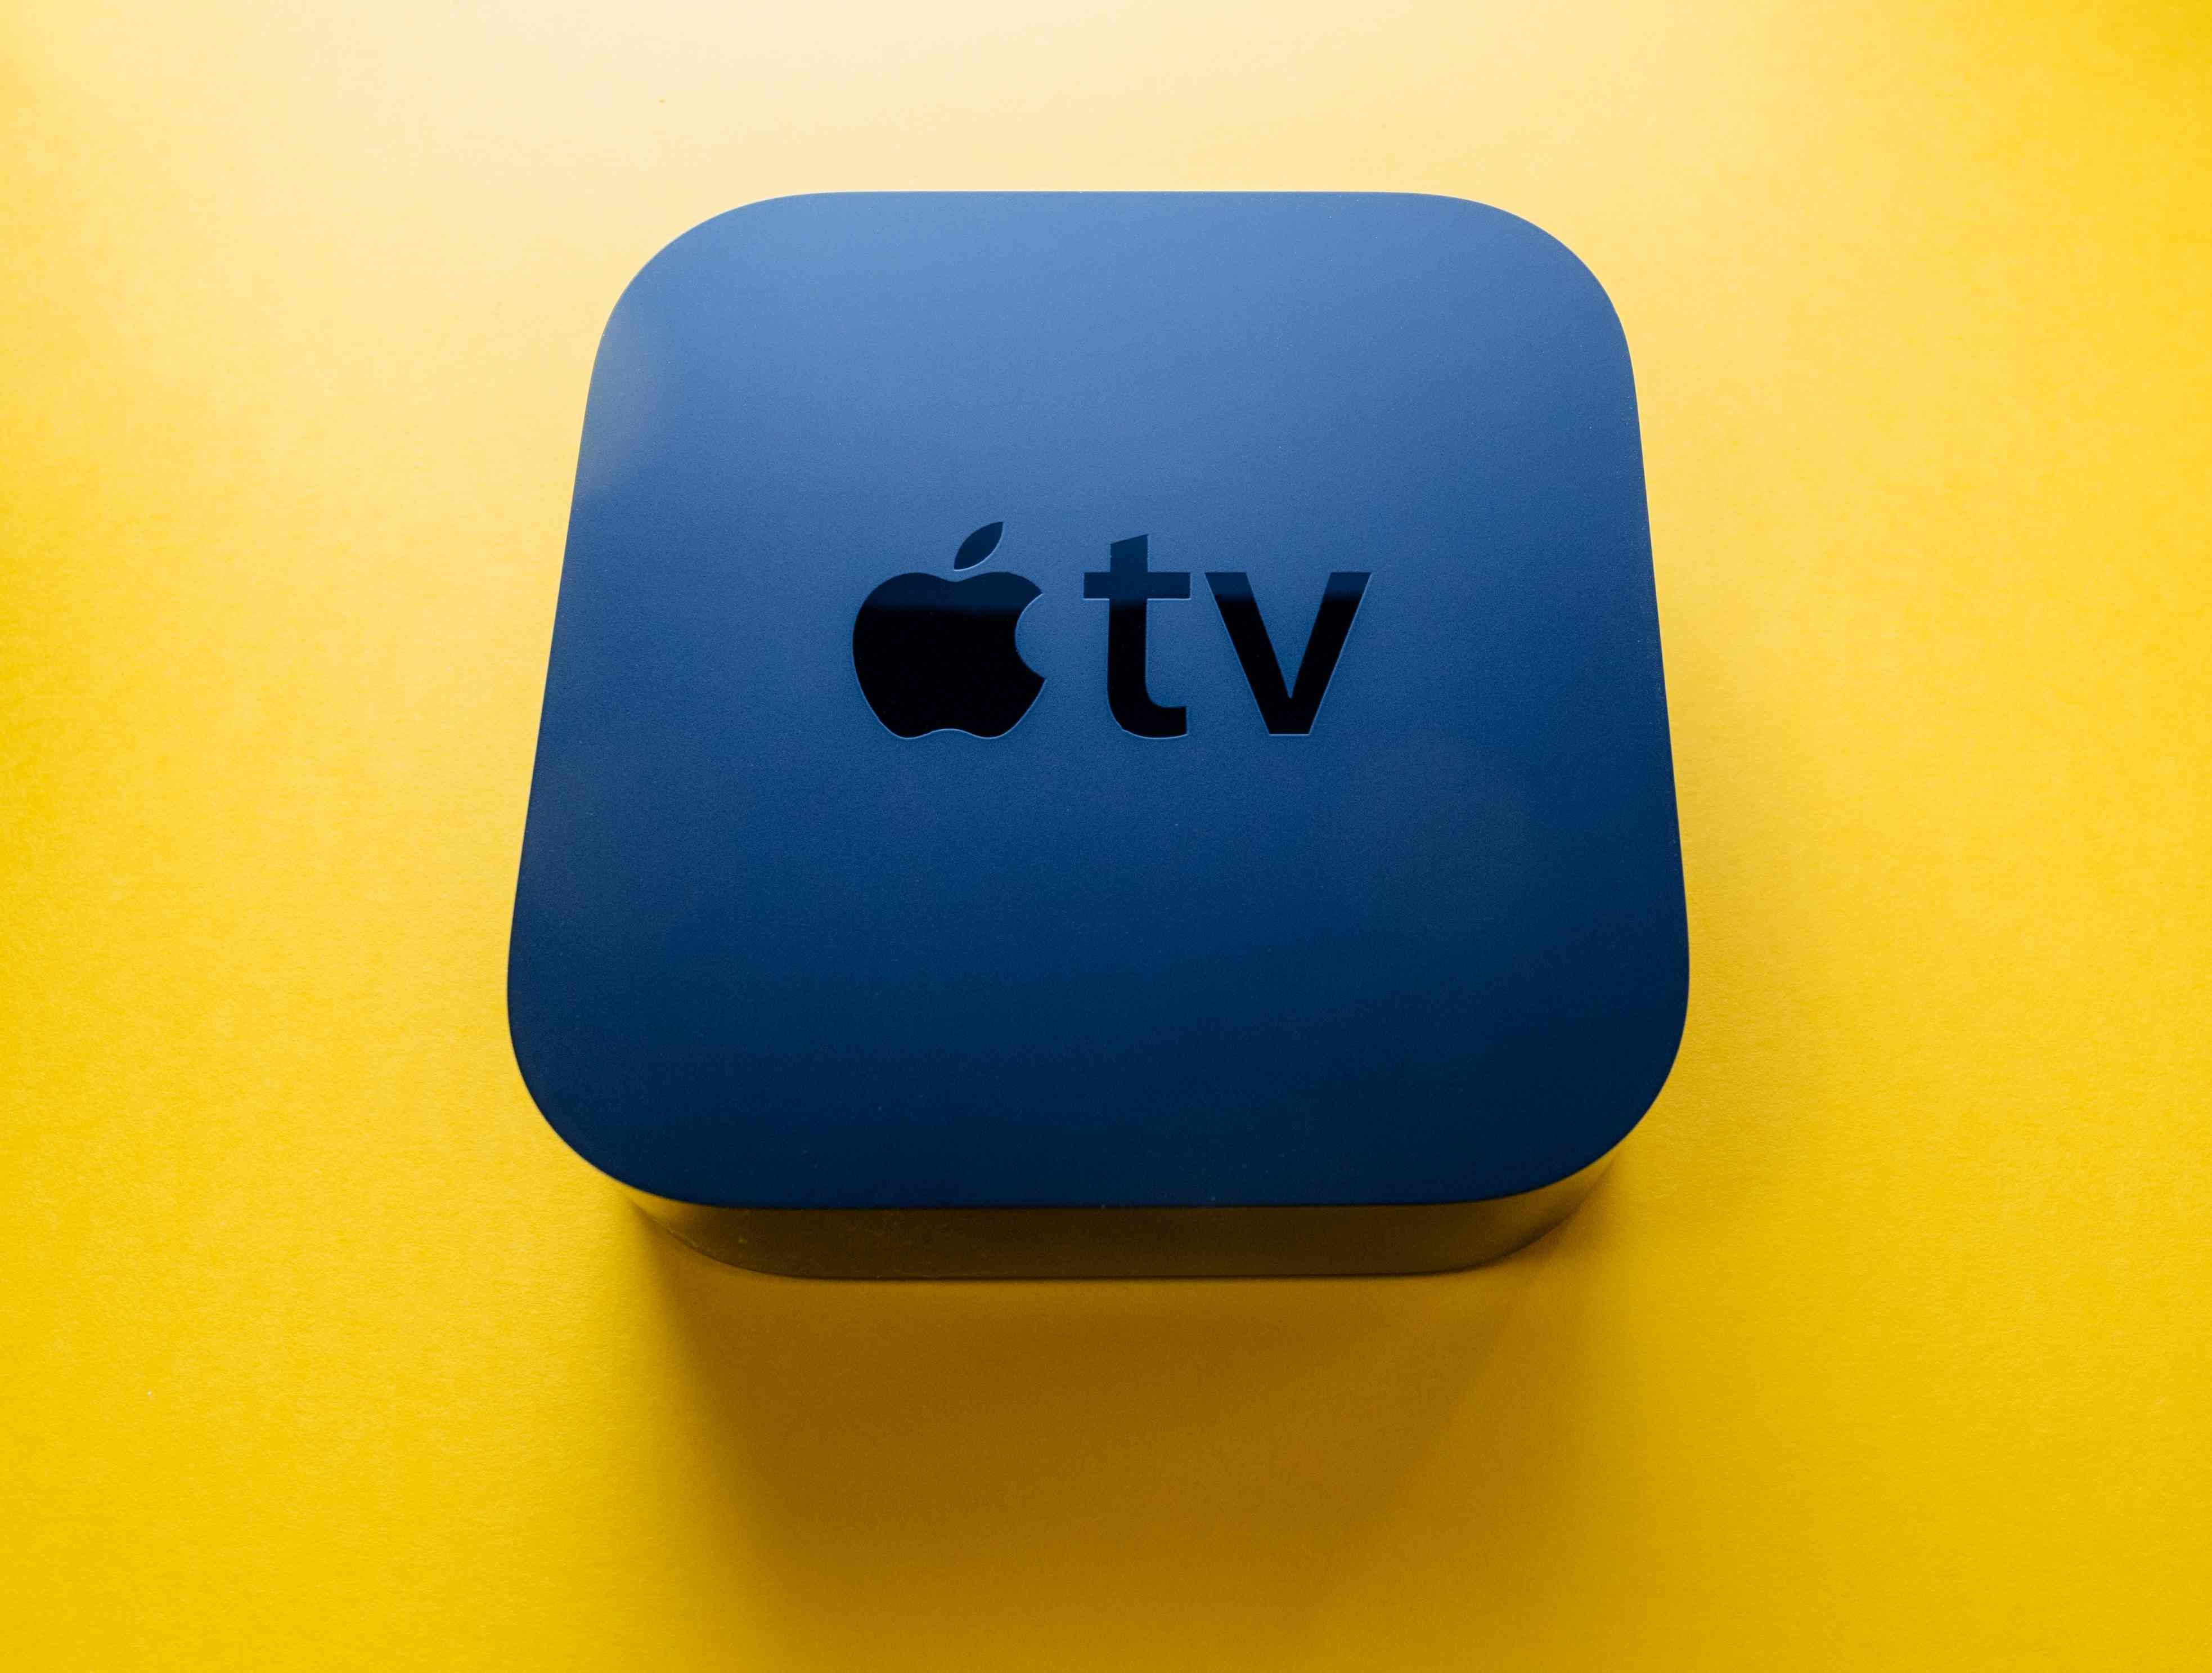 The Pros And Cons of Travelling With an Apple TV